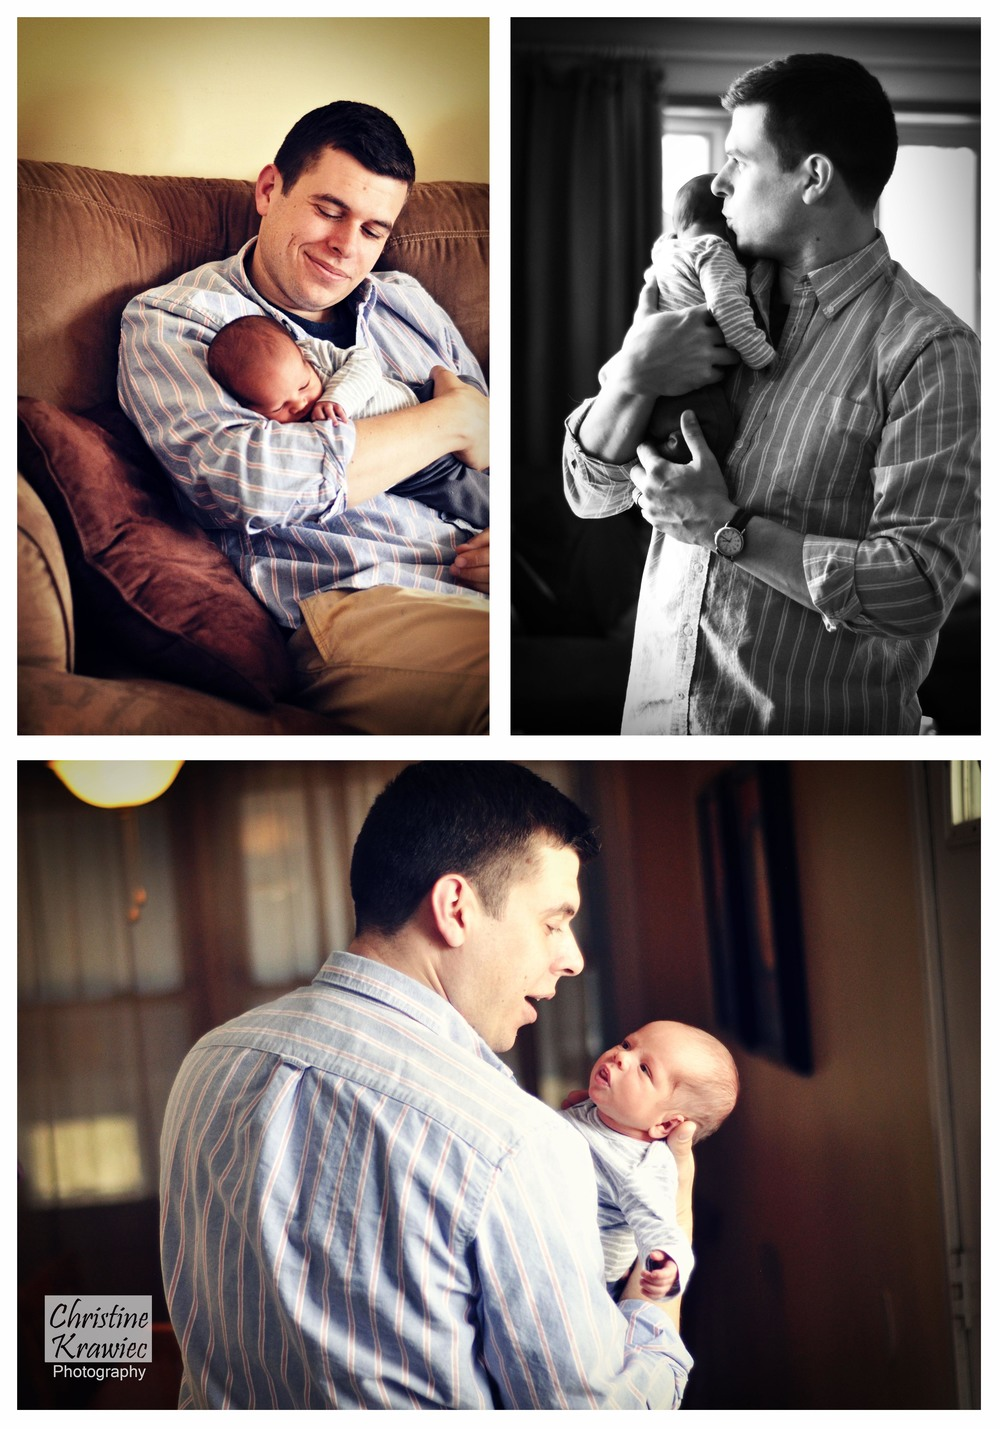 Christine Krawiec Photography - Philadelphia Newborn Photographer